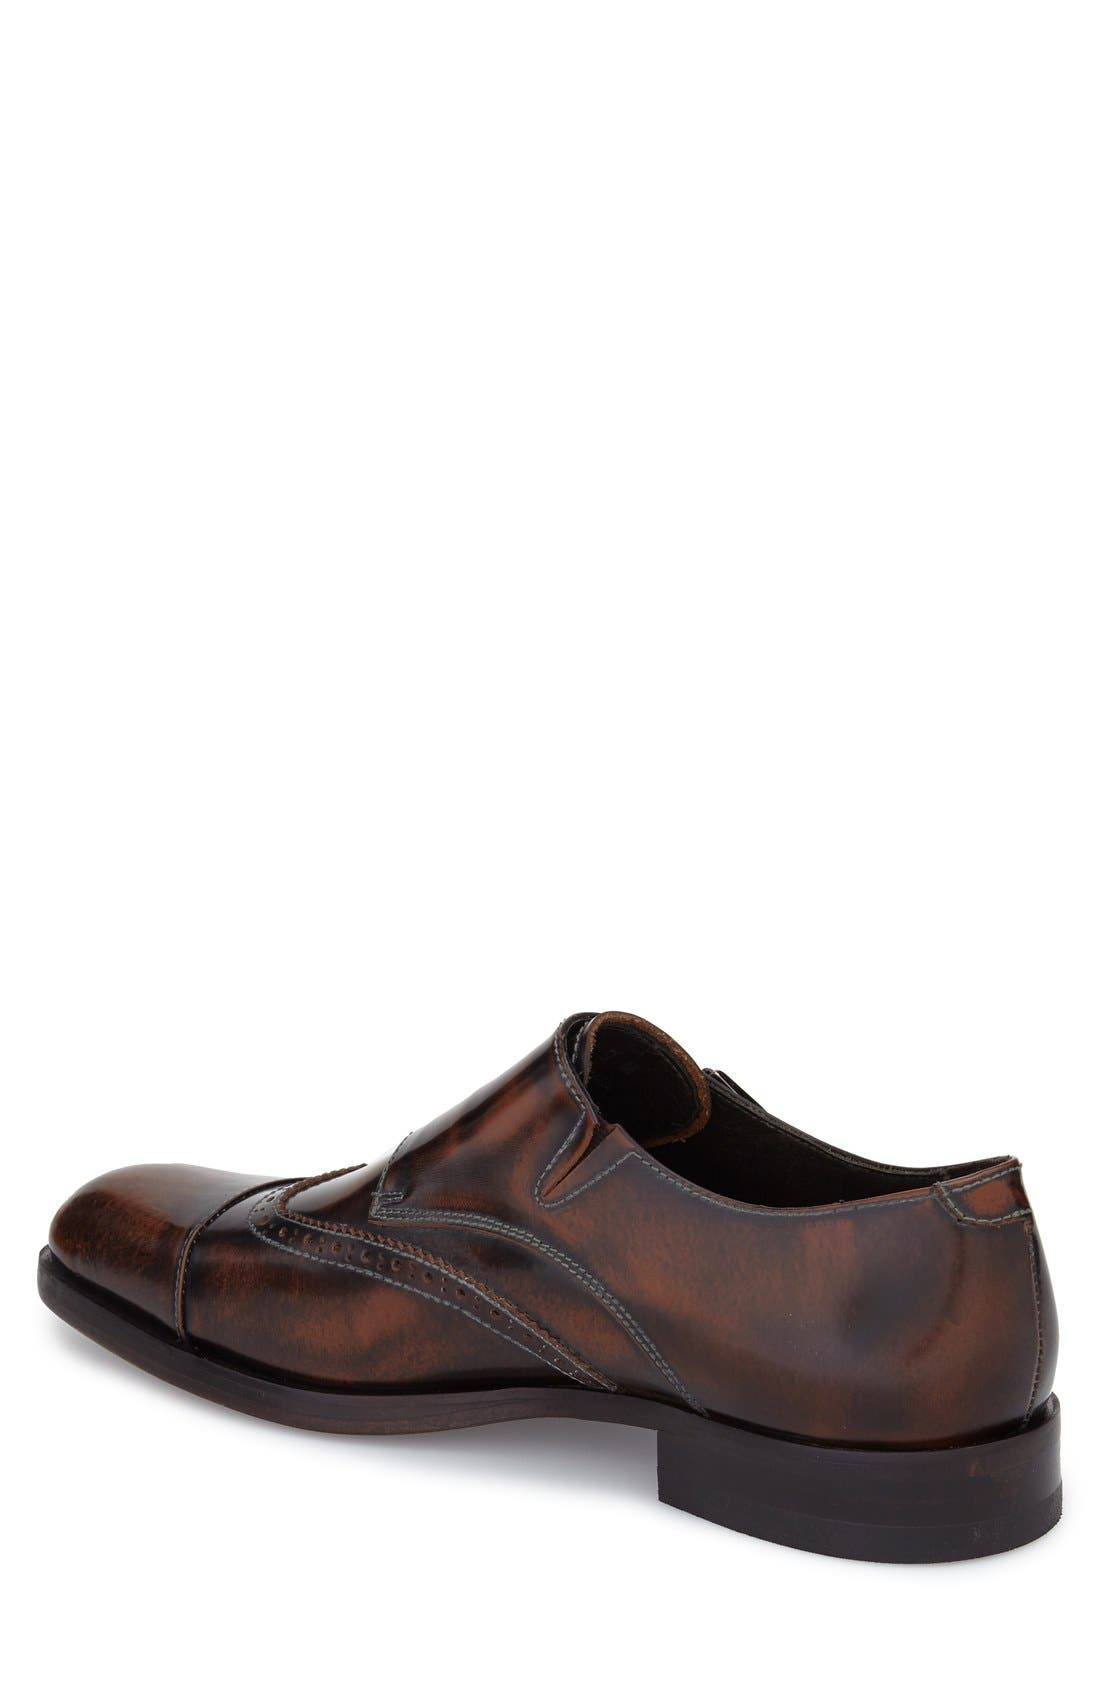 Alternate Image 2  - Donald J Pliner 'Ziggy' Double Monk Strap Shoe (Men)